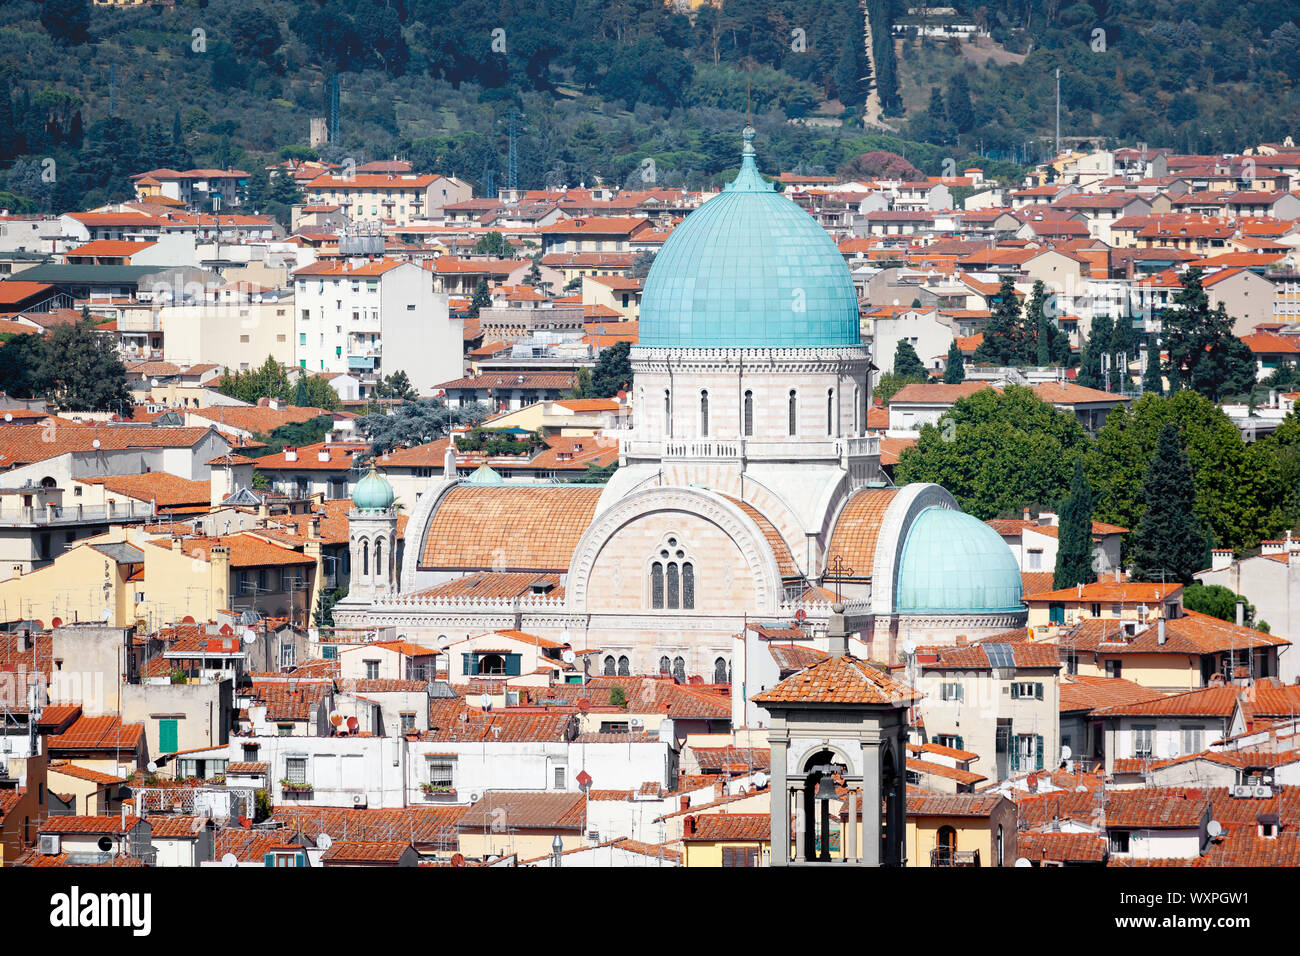 An image of the Synagogue in Florence Italy Stock Photo